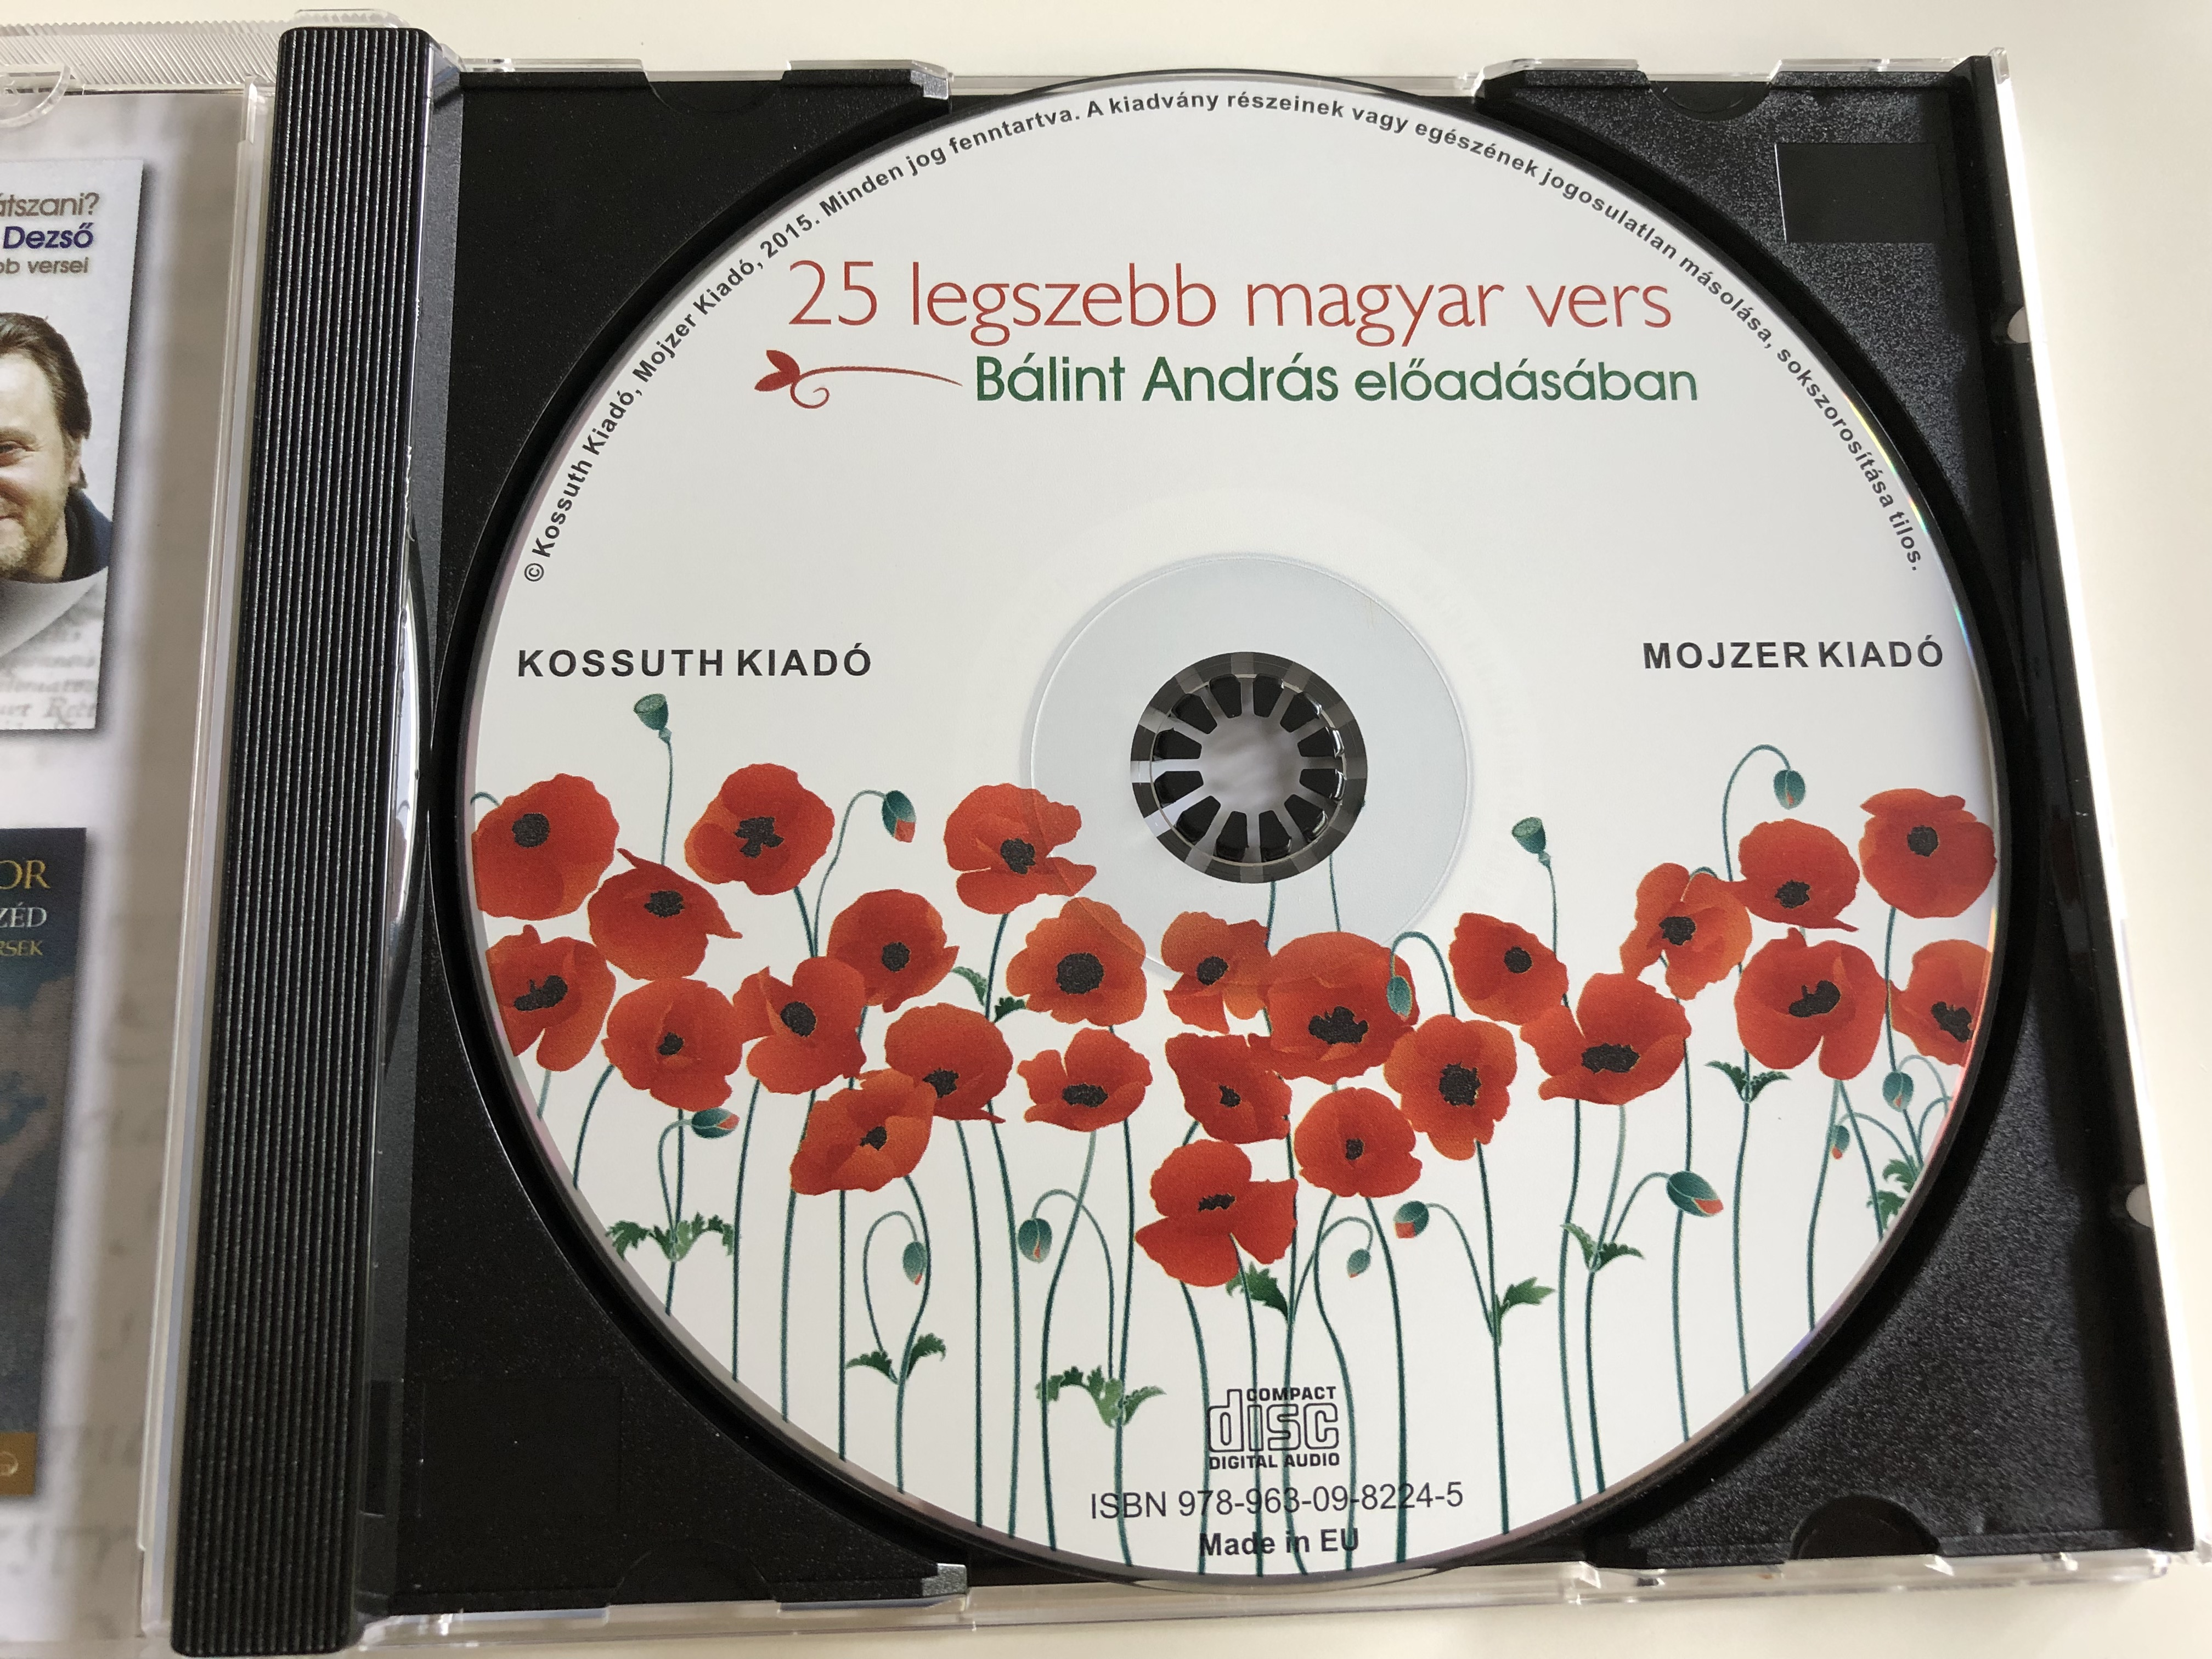 25-legszebb-magyar-vers-b-lint-andr-s-el-ad-s-ban-audio-cd-2018-25-most-beautiful-hungarian-poems-recited-by-andr-s-b-lint-kossuth-mojzer-2-.jpg